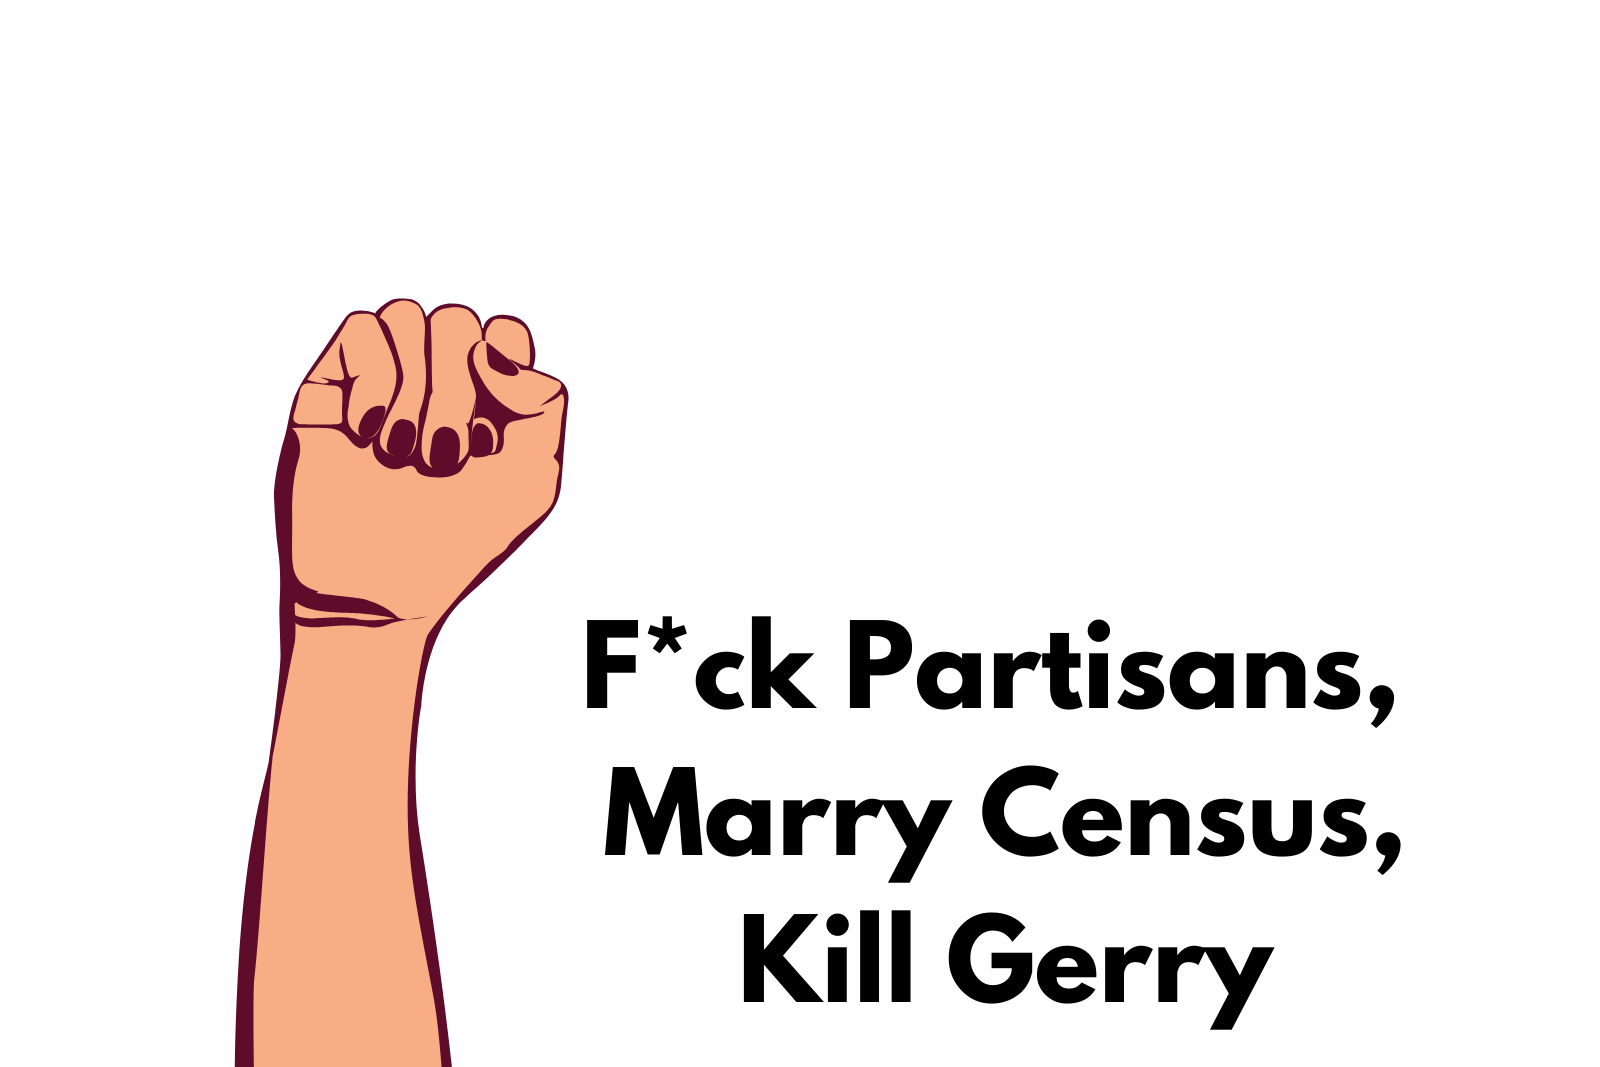 Ep. 8 F*ck Partisans, Marry Census, Kill Gerry